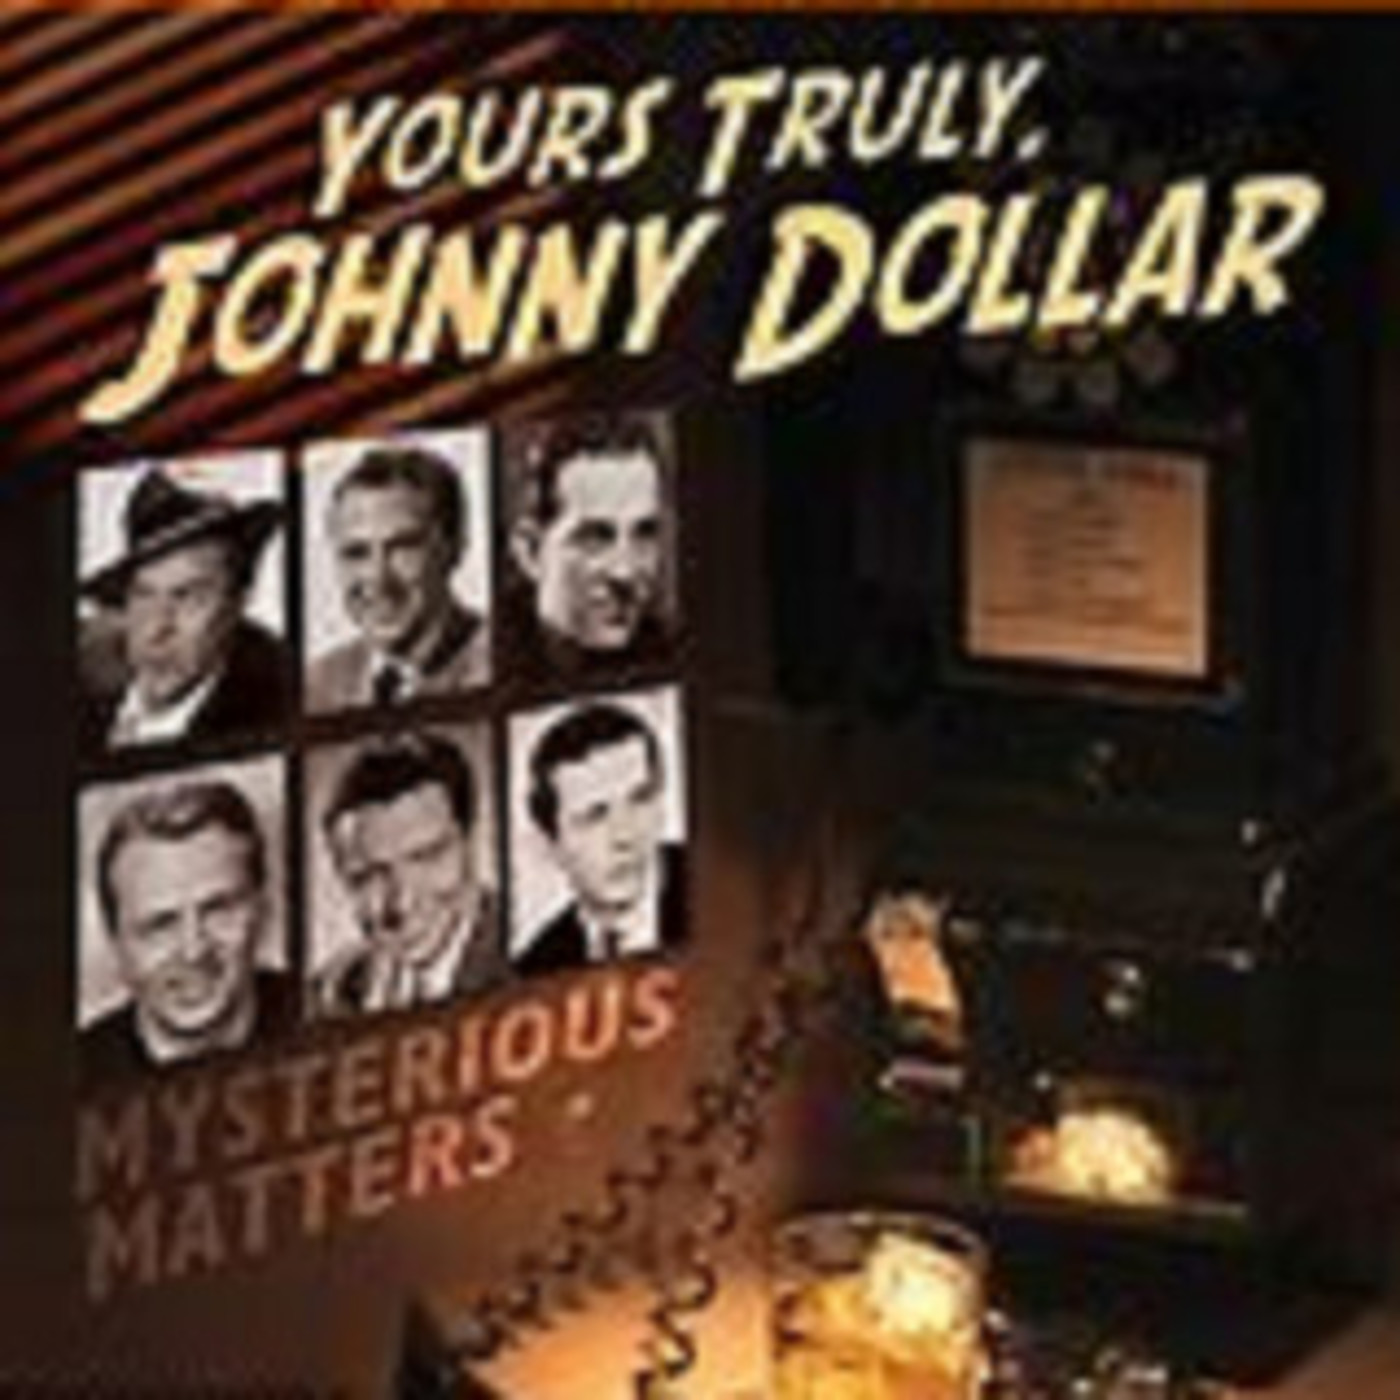 Yours Truly, Johnny Dollar - 072962, episode 802 - The Four Is a Crowd Matter